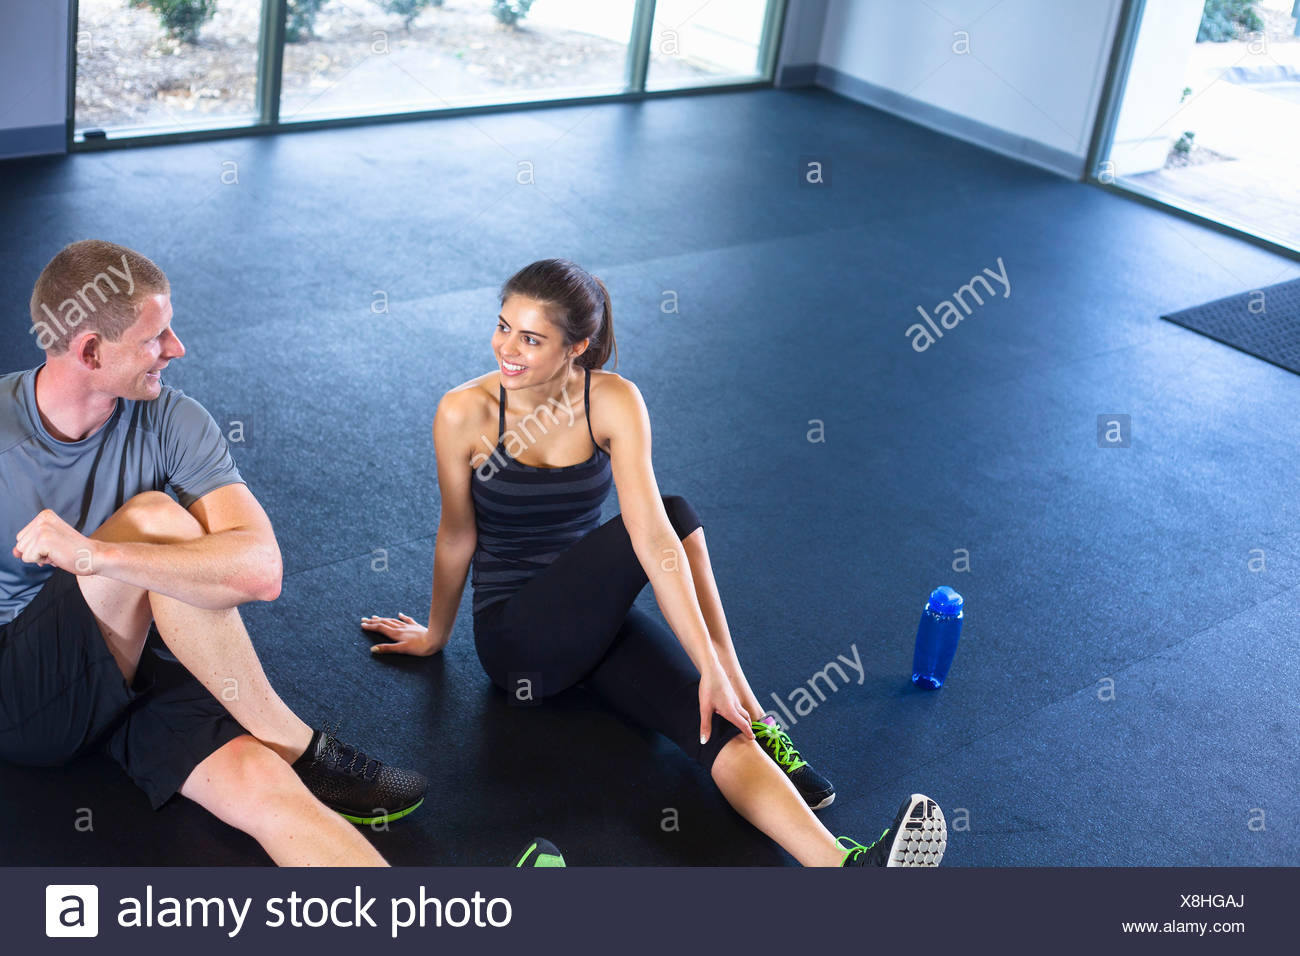 Couple stretching - Stock Image